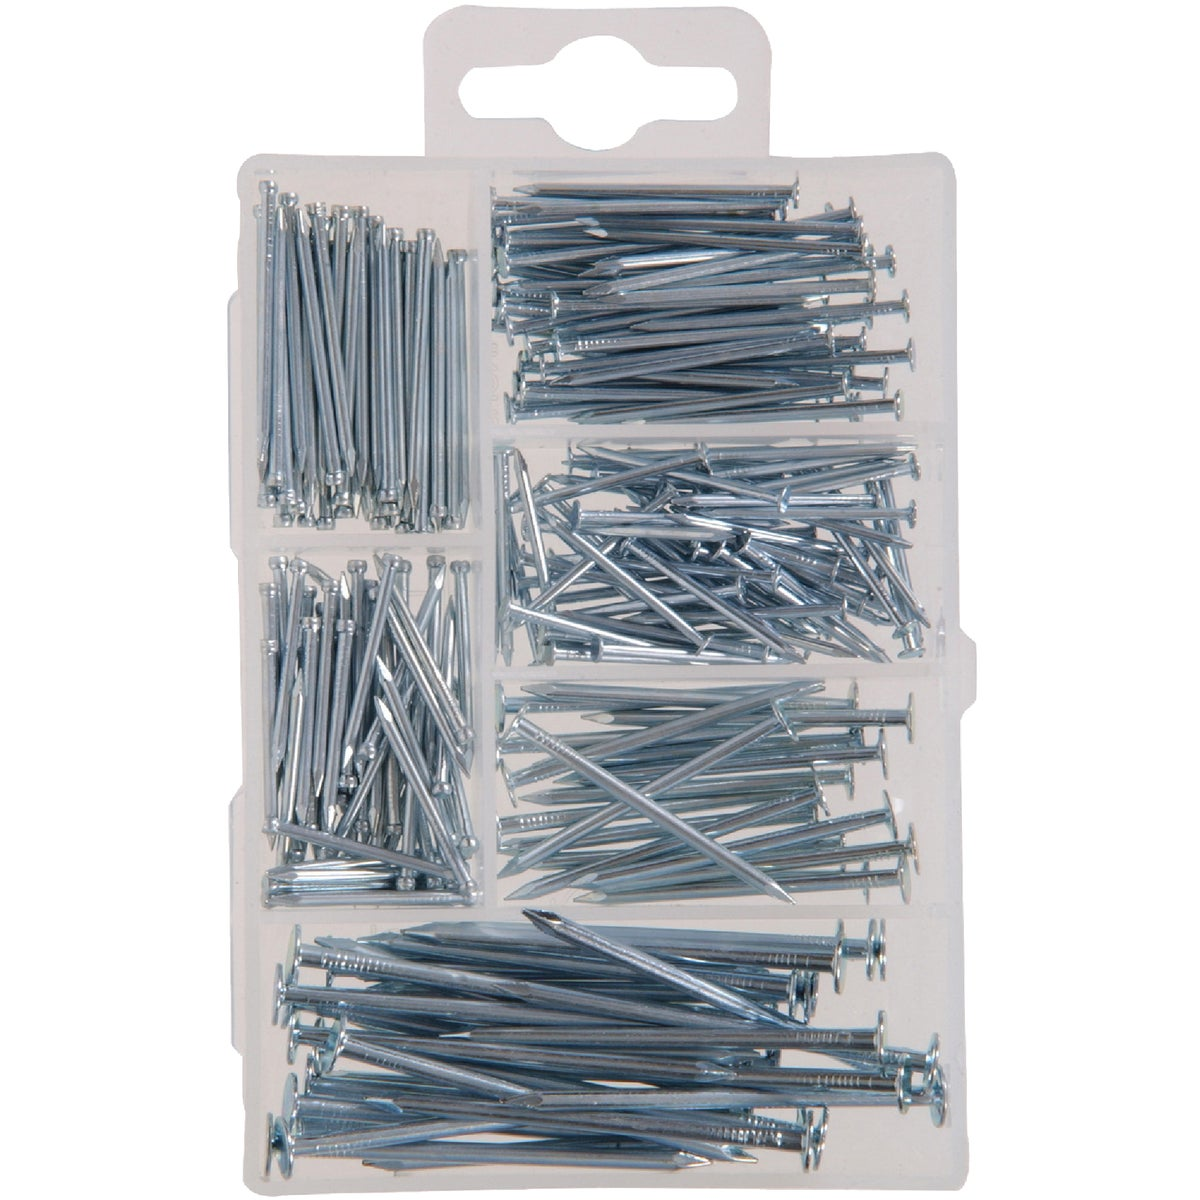 KIT WIRE NAILS AND BRADS - 130207 by Hillman Fastener